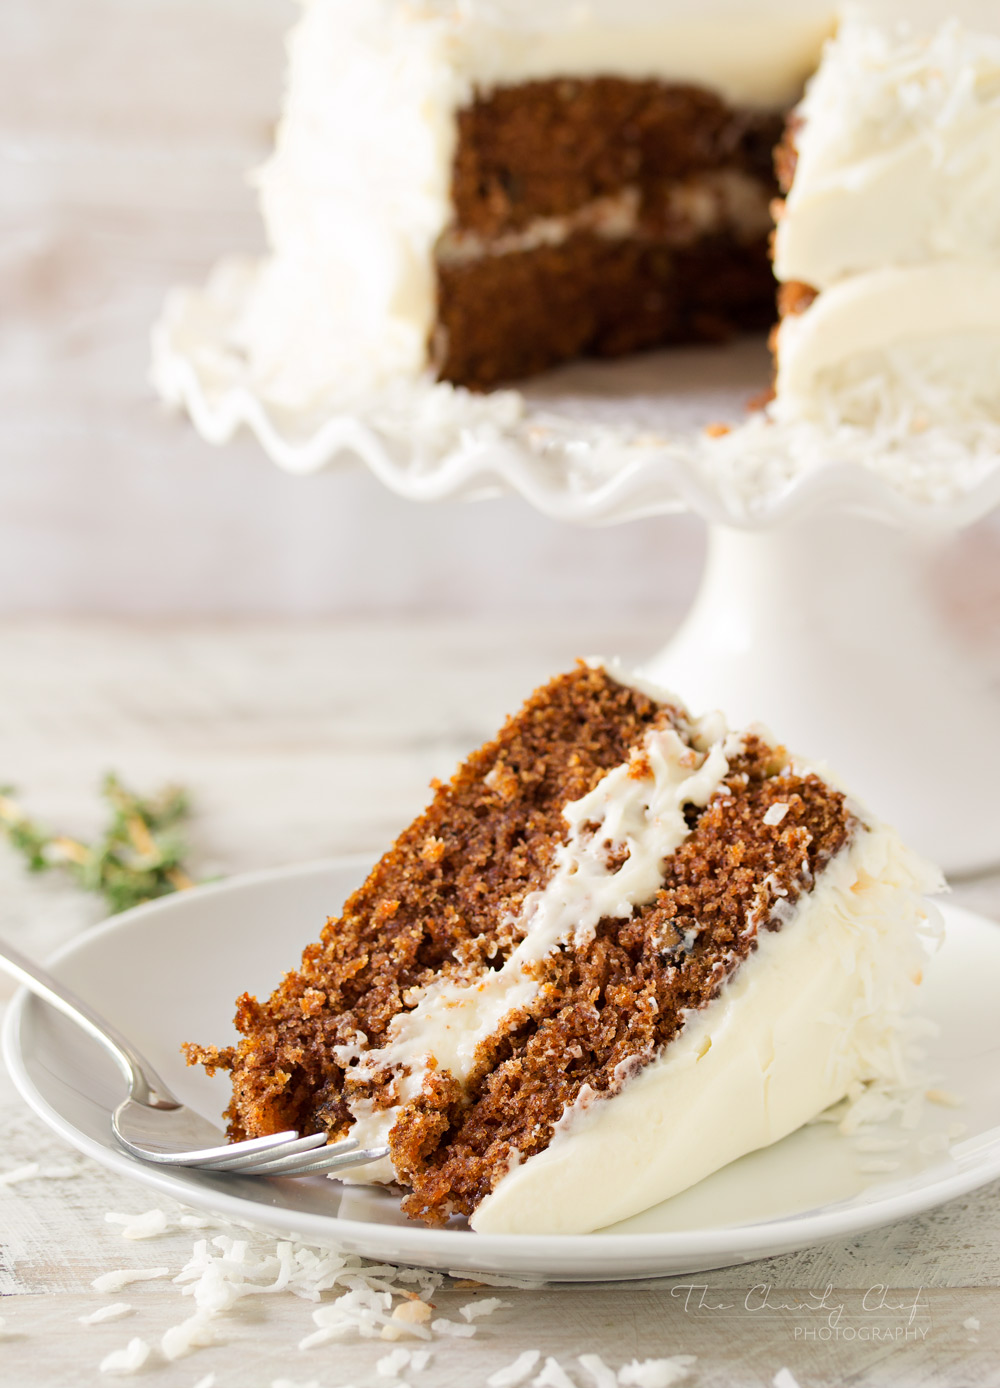 Moist Carrot Cake Recipe With Pineapple